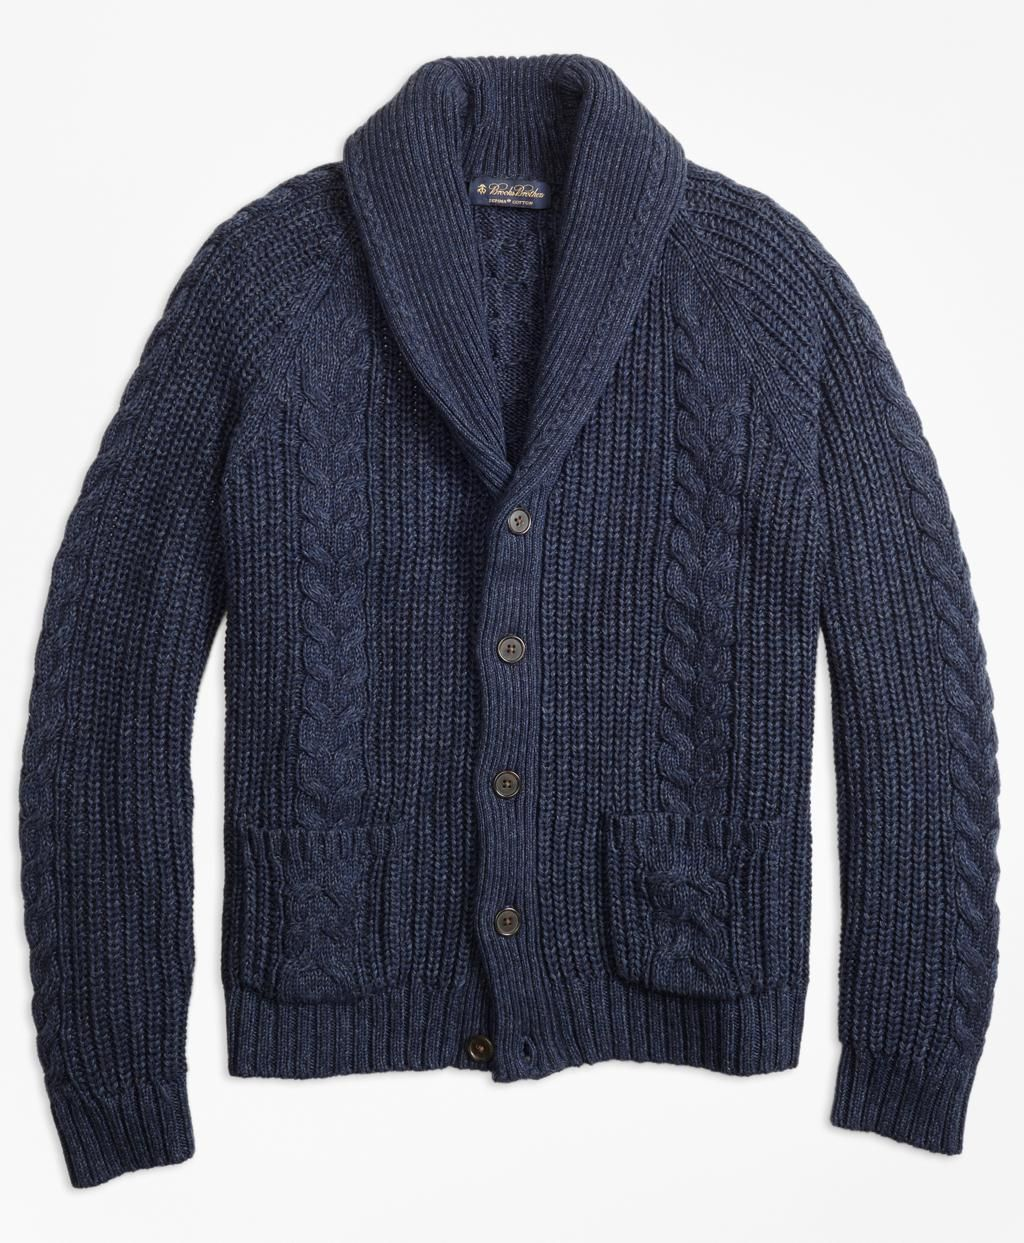 fa8a508c1f9 Brooks Brothers Men's Blue Cable Knit Shawl Collar Cardigan ...